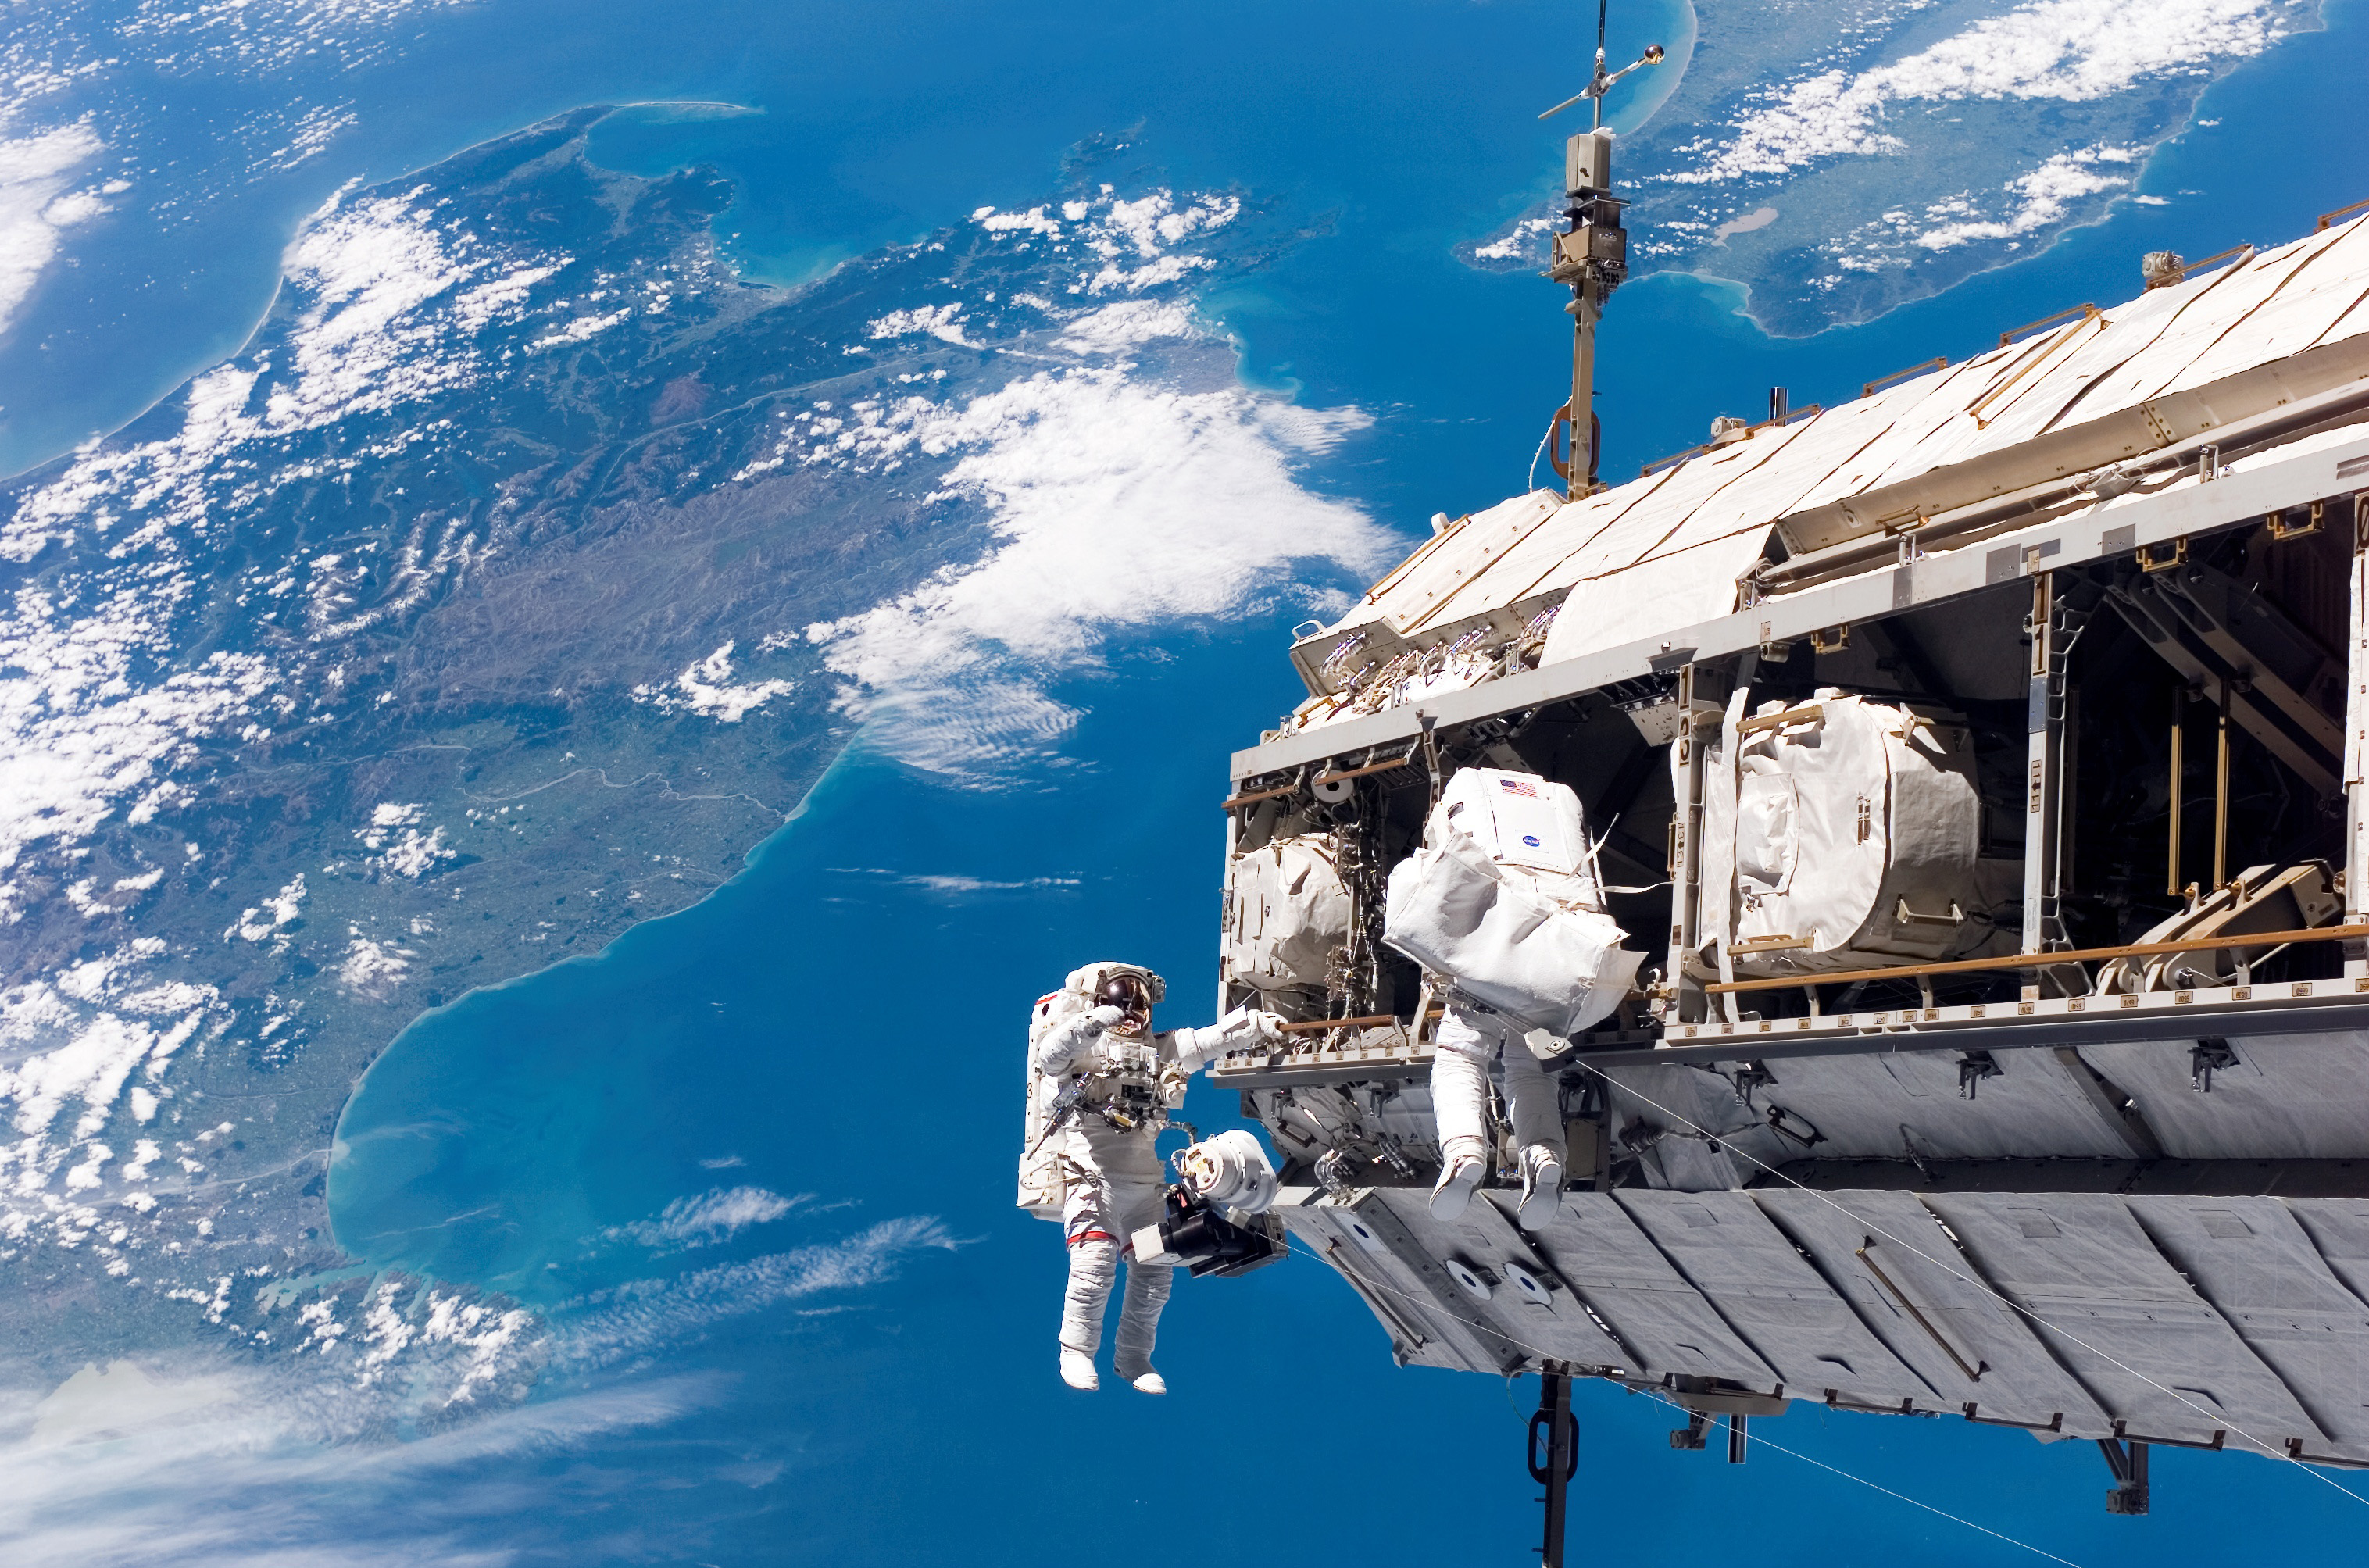 astronaut in space today - photo #24